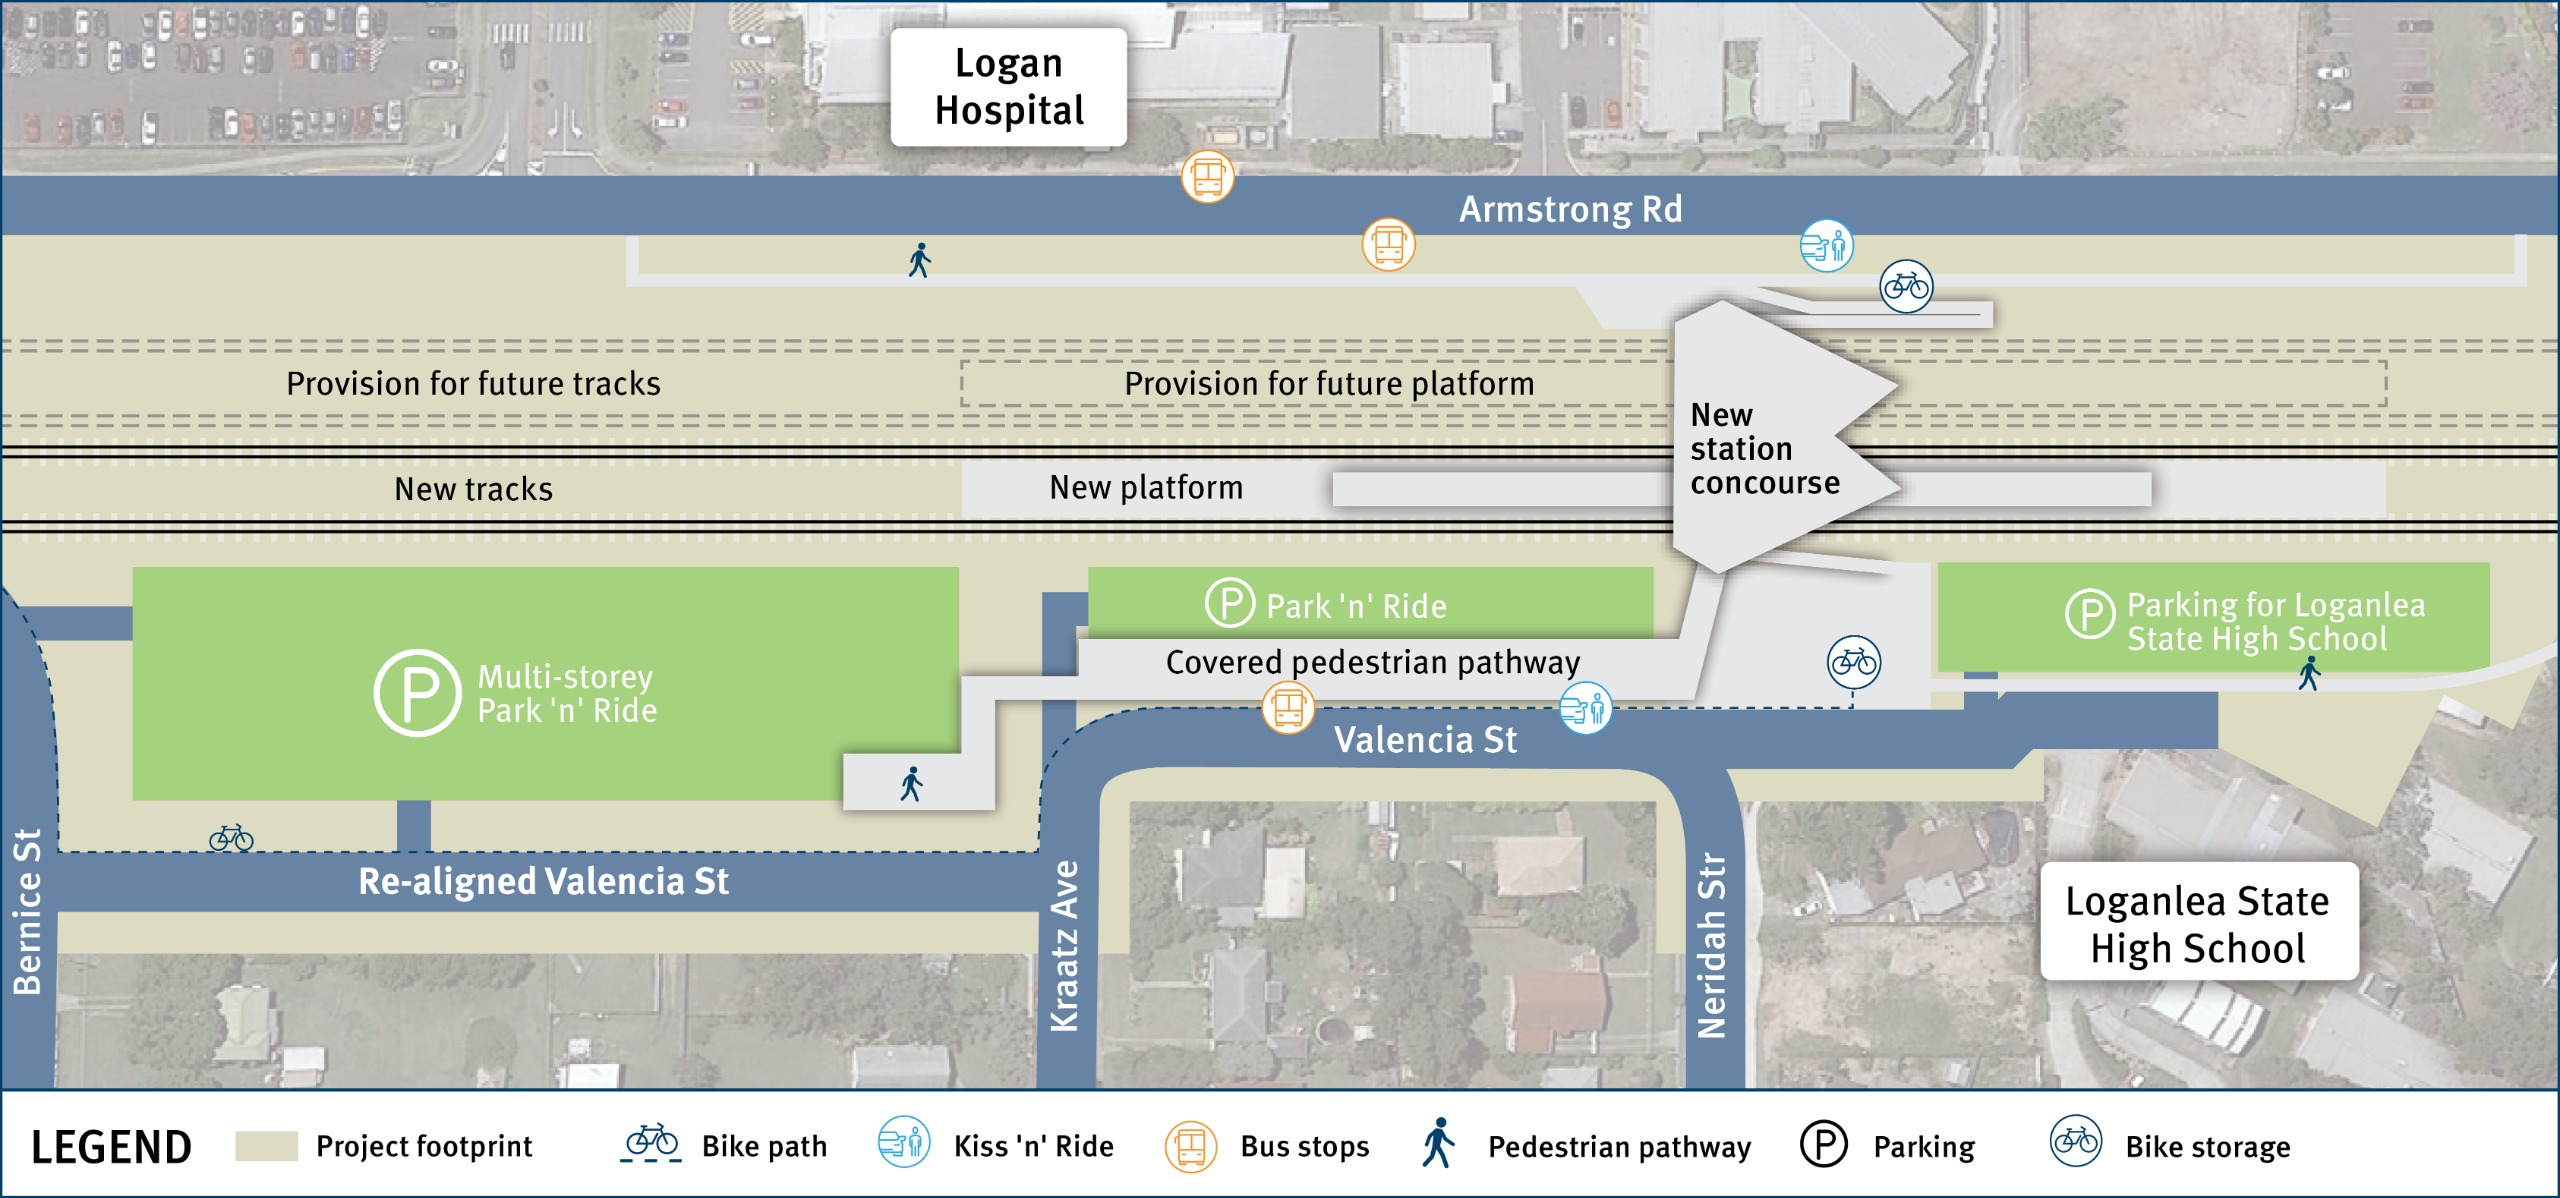 Draft layout of the new station and park and ride